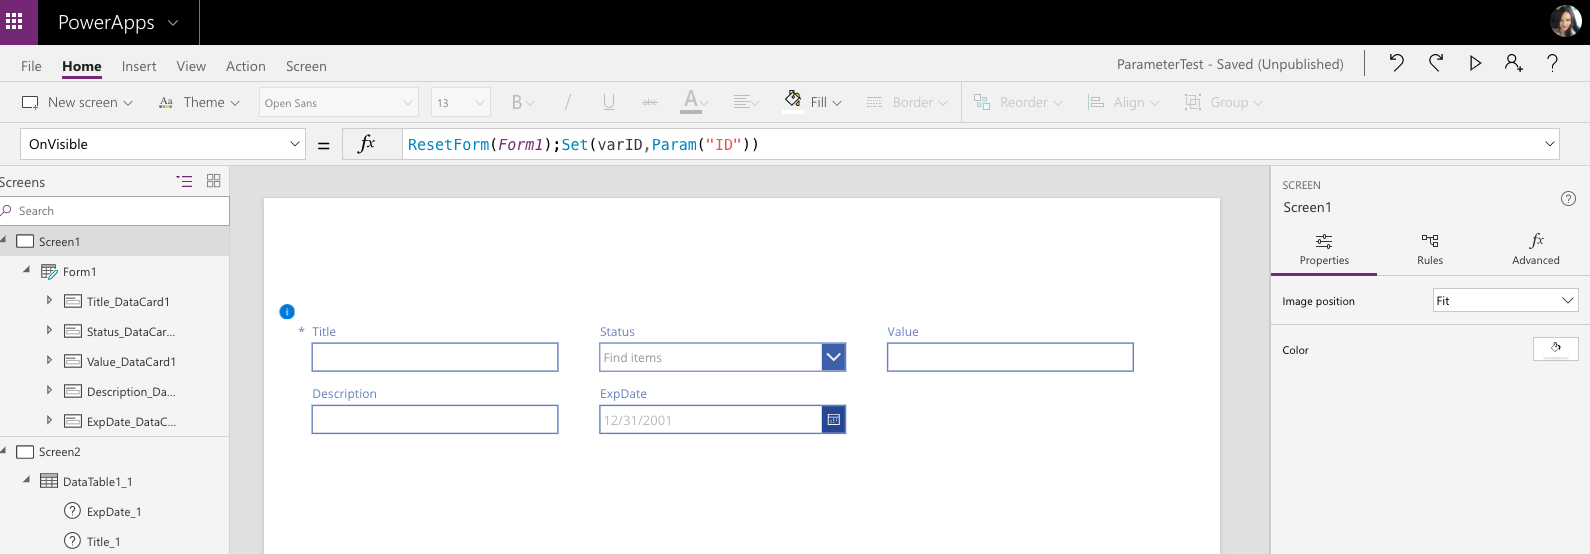 Passing Parameters to a PowerApp | April Dunnam - SharePoint